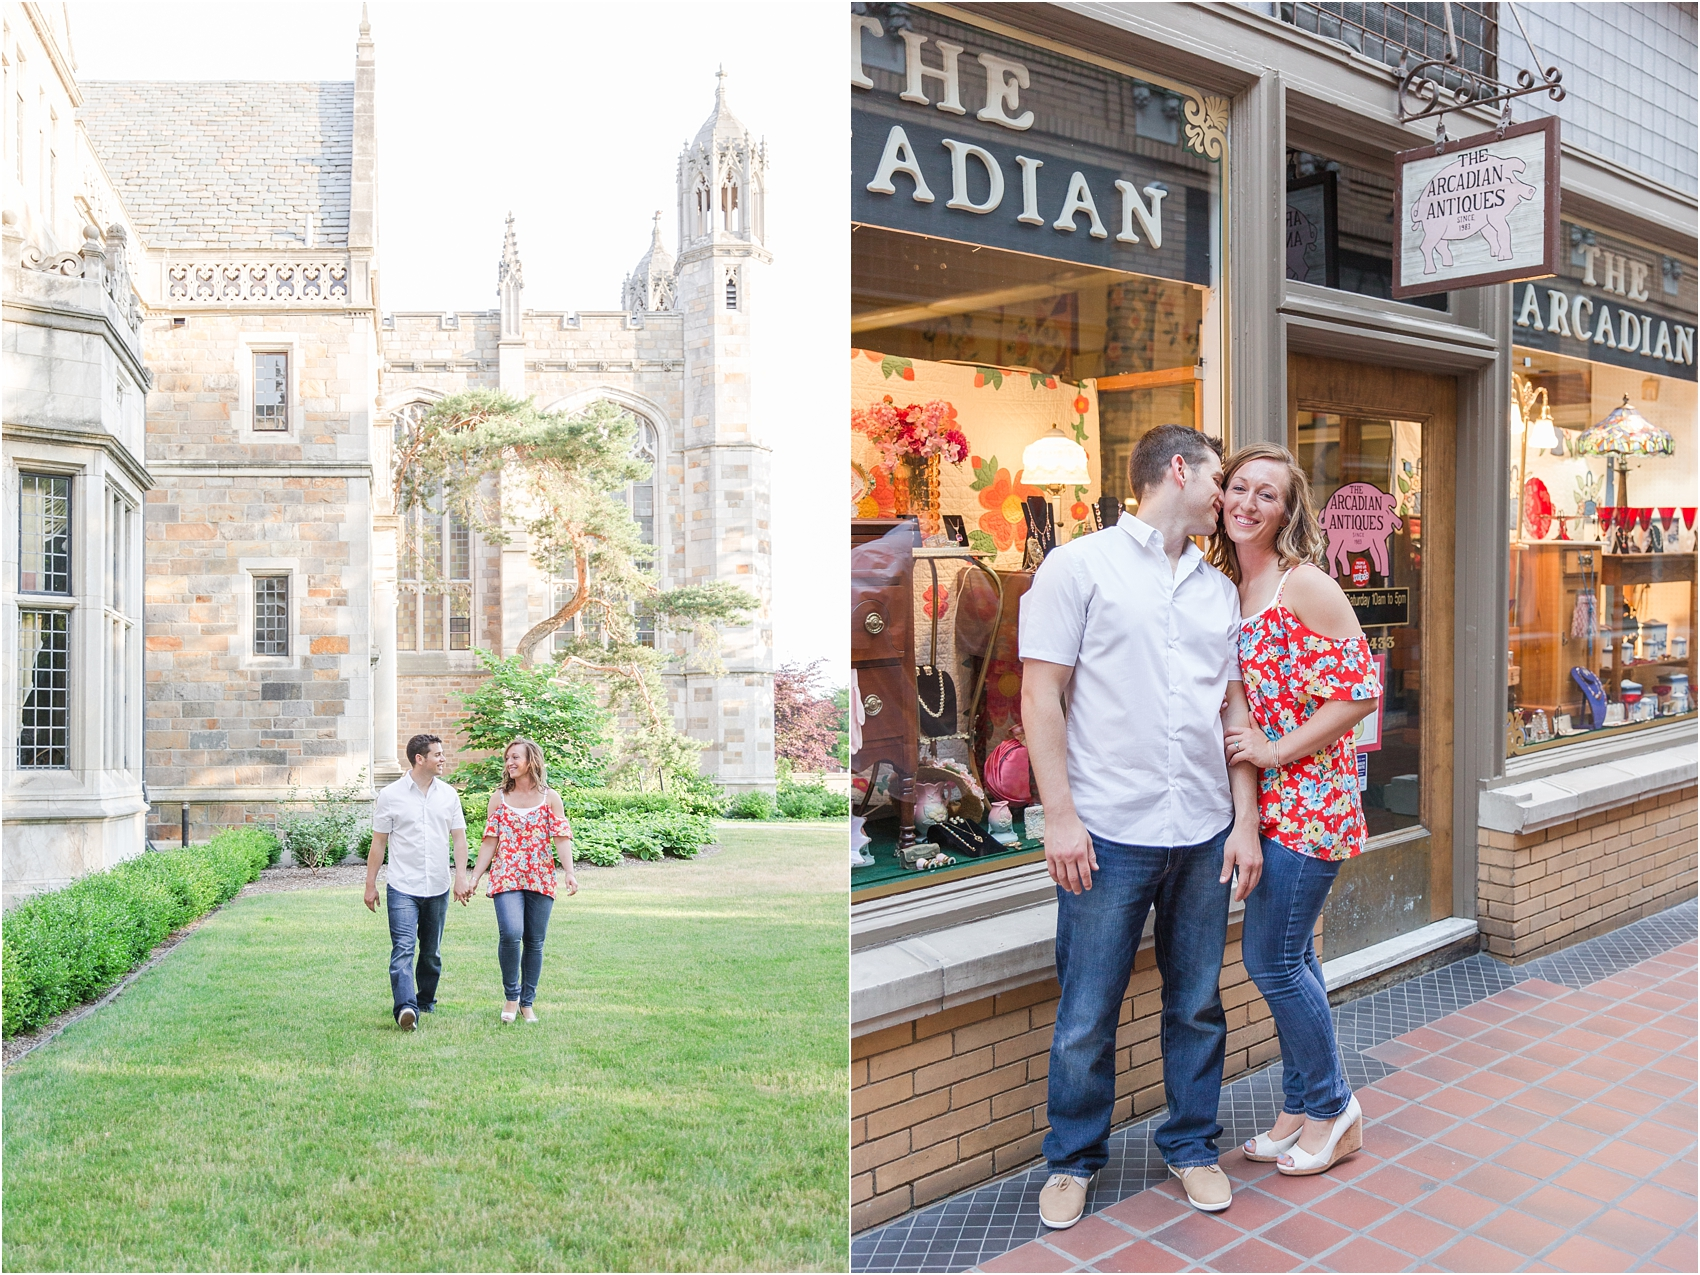 fun-adventurous-engagement-photos-at-the-nickels-arcade-in-ann-arbor-mi-by-courtney-carolyn-photography_0023.jpg